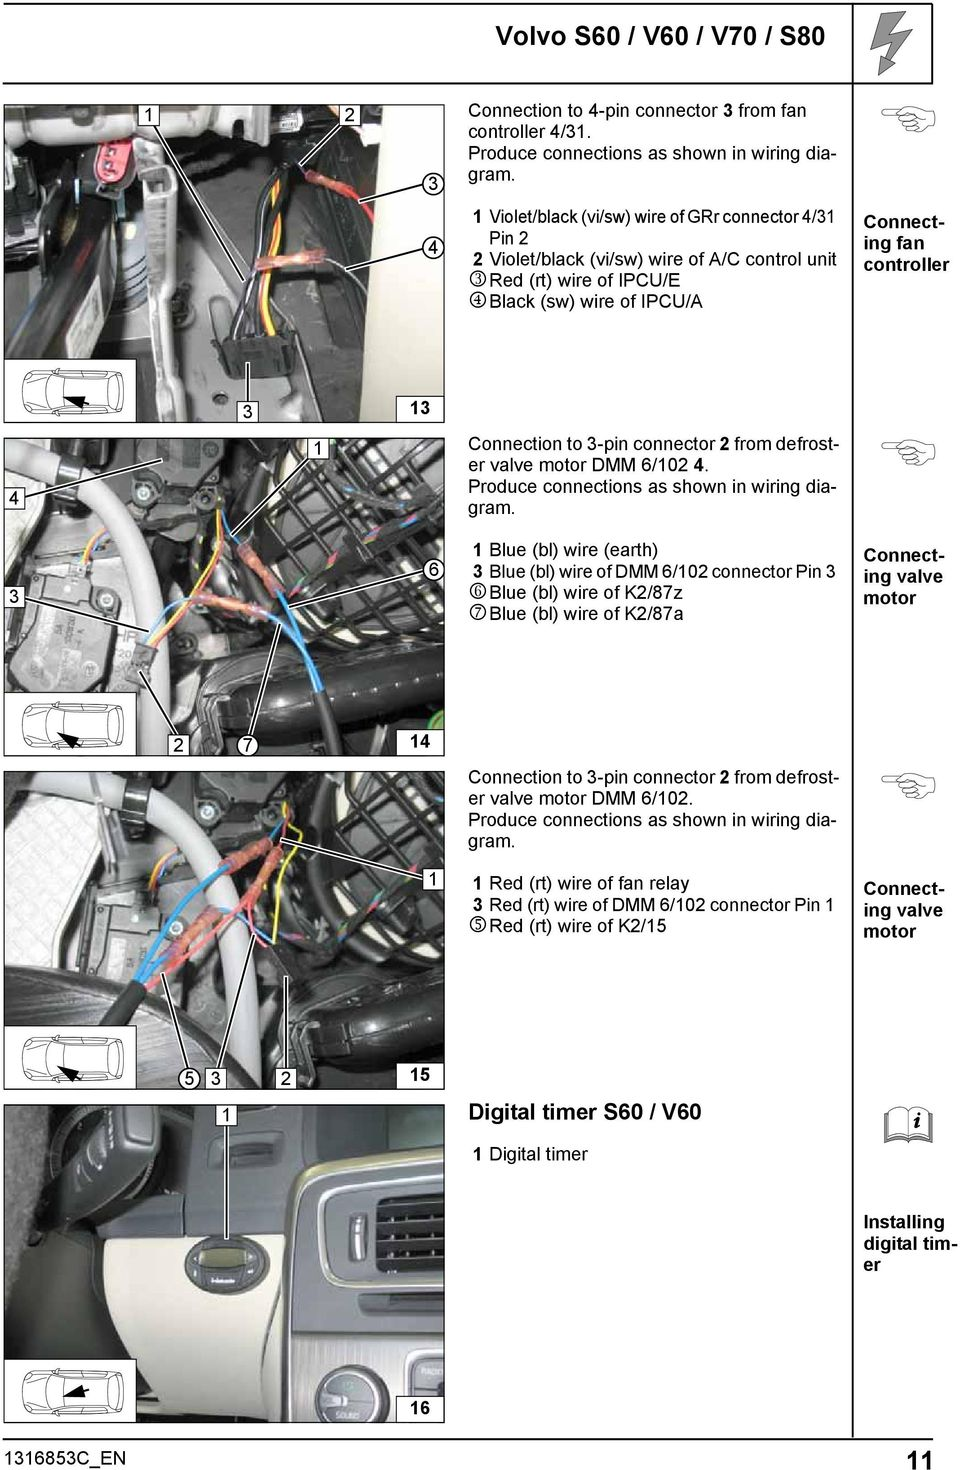 Always Follow All Webasto Installation And Repair Instructions Volvo 850 Ac Fan Relay Wiring Diagram From Defroster Valve Motor Dmm 6 0 Produce Connections As Shown In